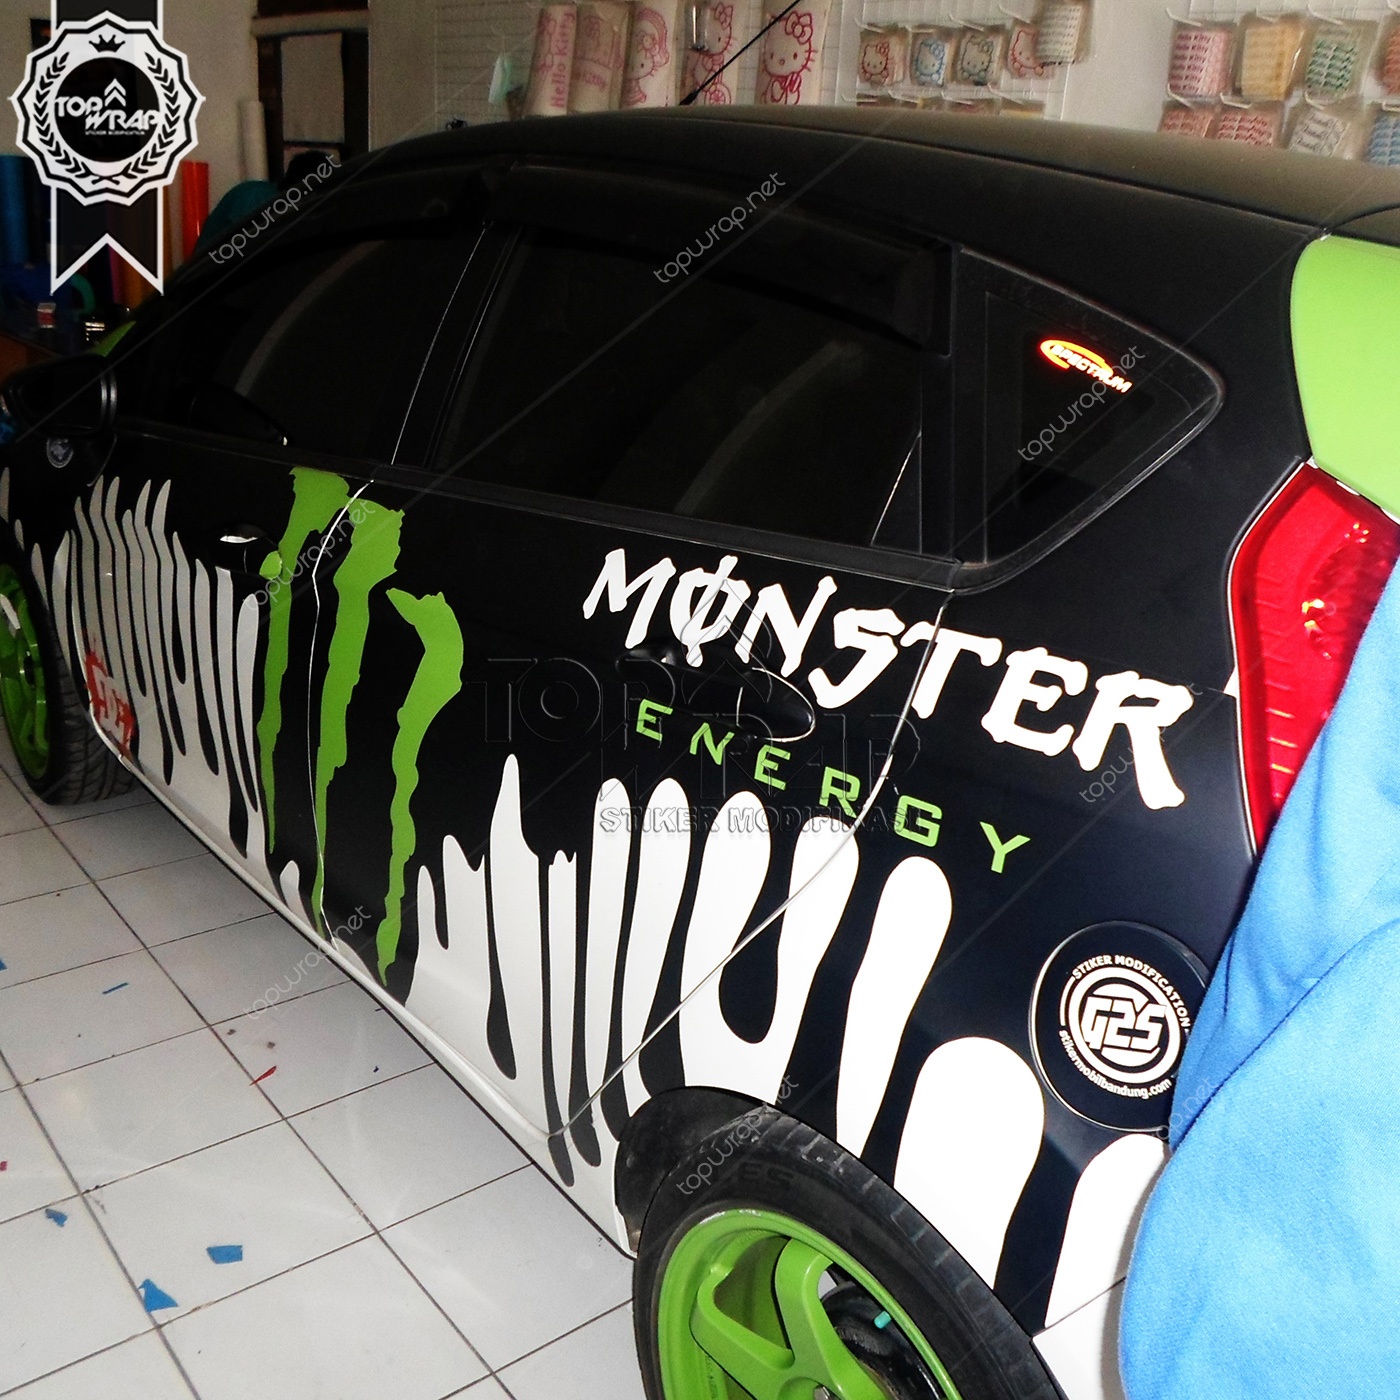 Jual wrapping sticker motif monster energy cutting stiker mobil